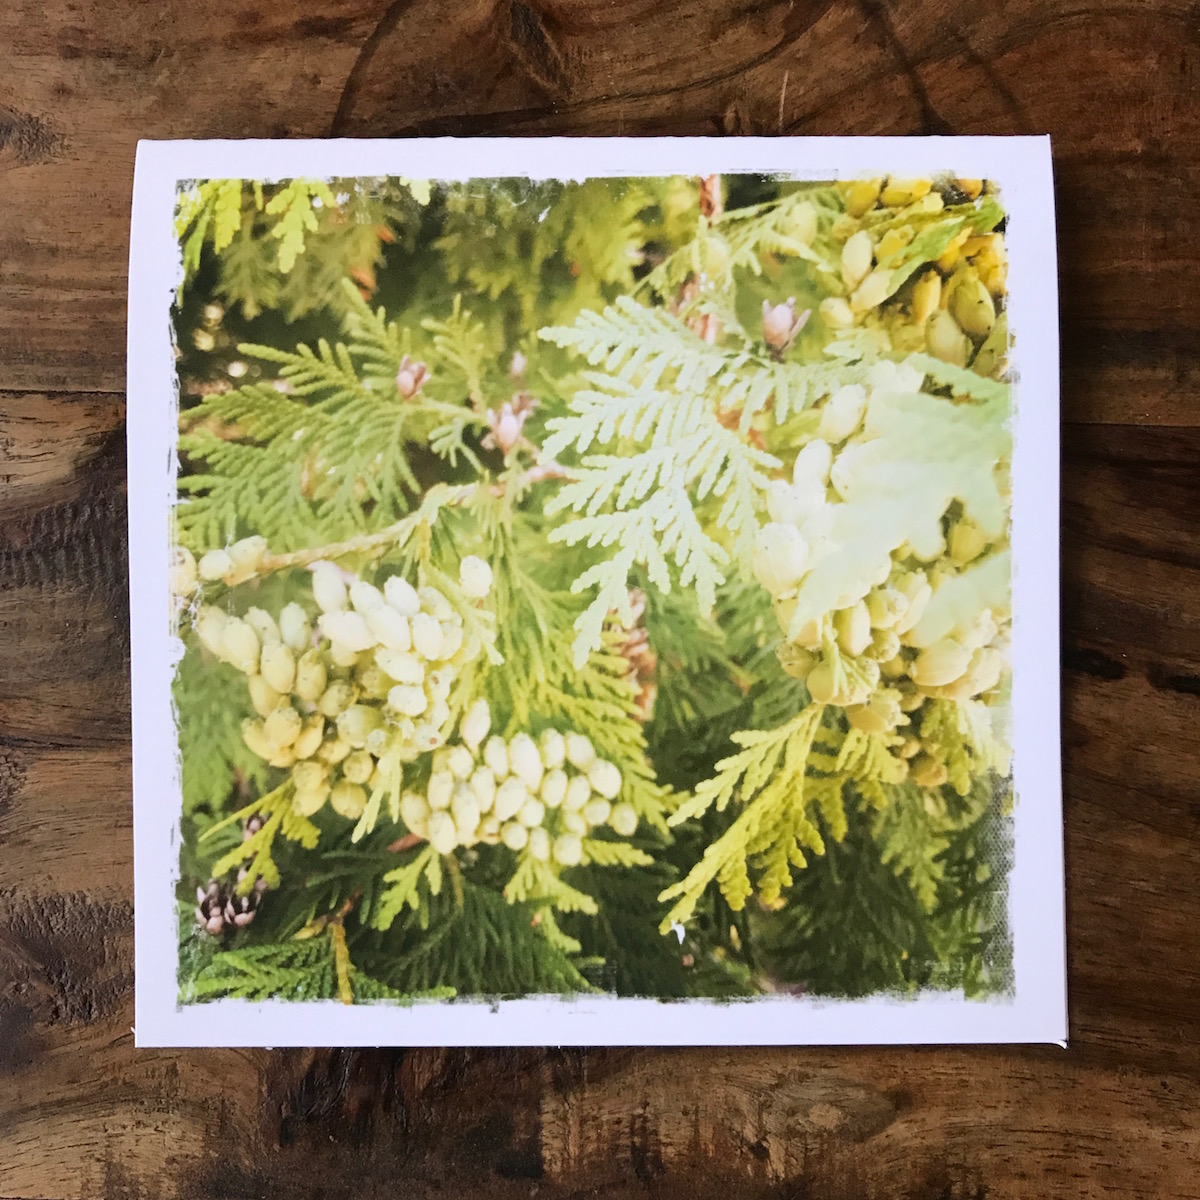 Thuja in Northern Michigan Note Card, photo by Barbara Sinclair